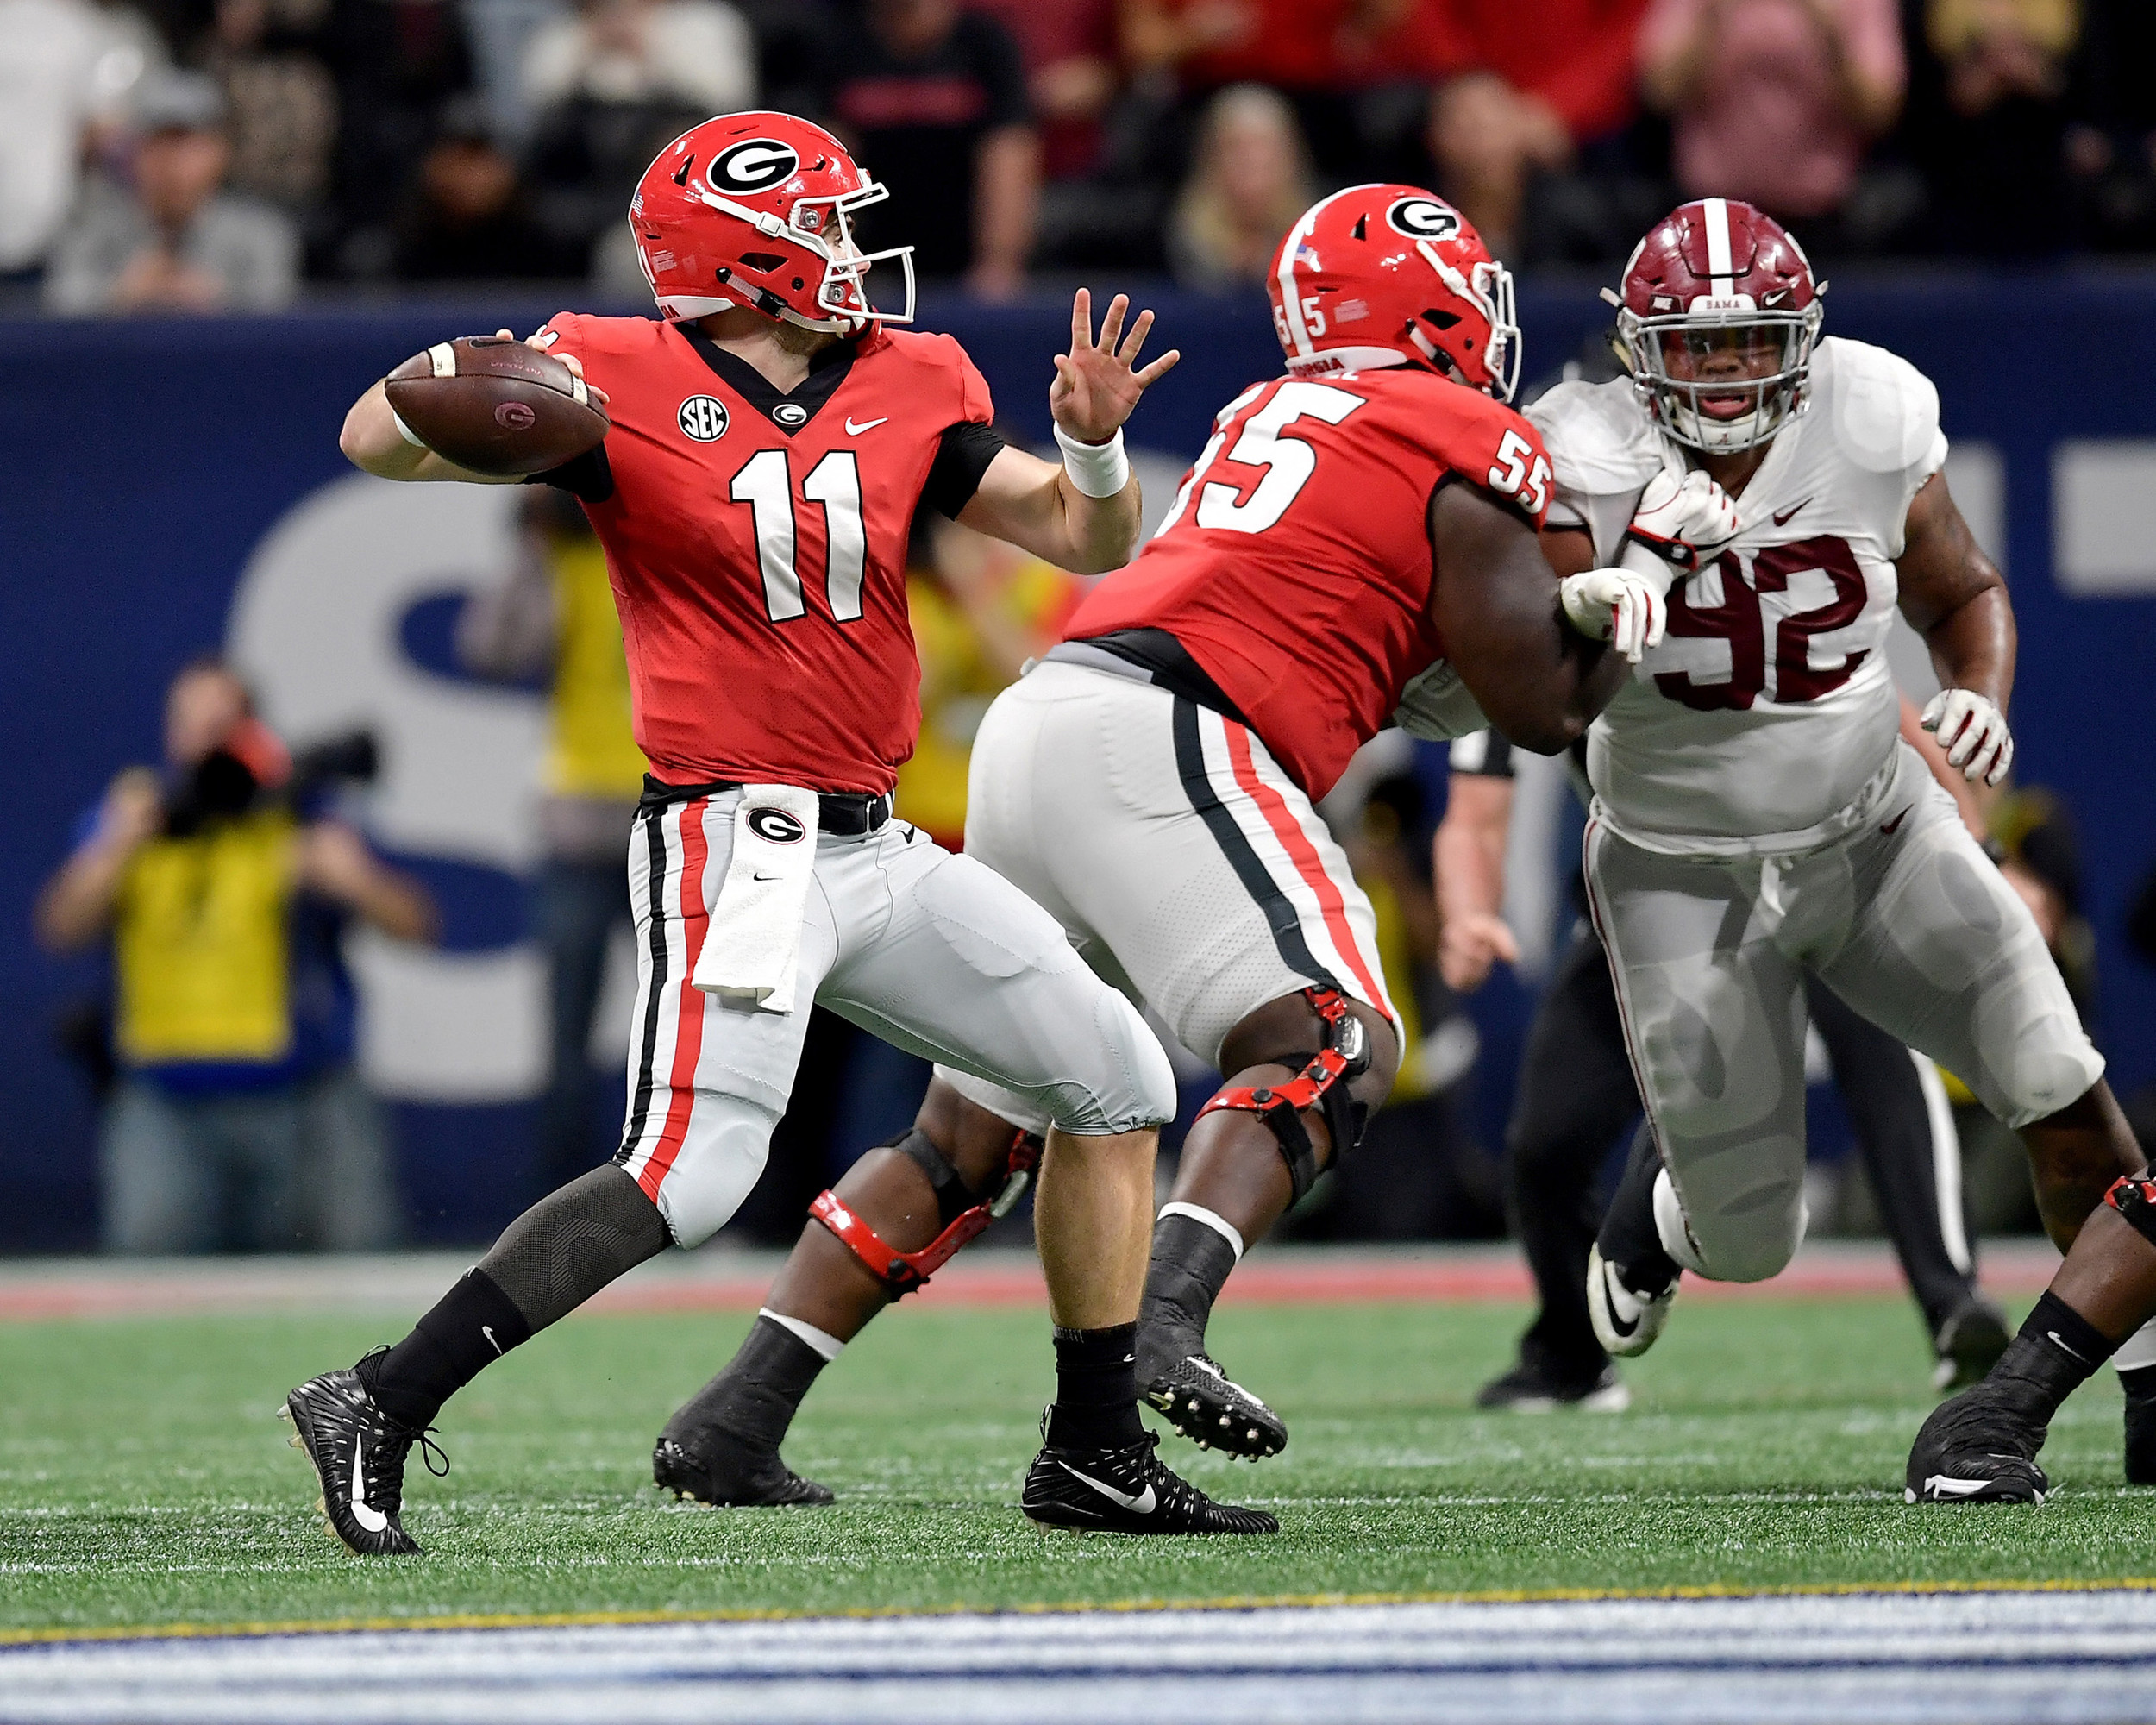 Georgia Bulldogs quarterback Jake Fromm (11) passes during the first half of the 2018 SEC Championship football game, featuring the Bulldogs and the Alabama Crimson Tide, at Mercedes-Benz Stadium in Atlanta, Ga., on Dec. 1, 2018. Alabama wins 35-28. (Photo by Lee Walls)